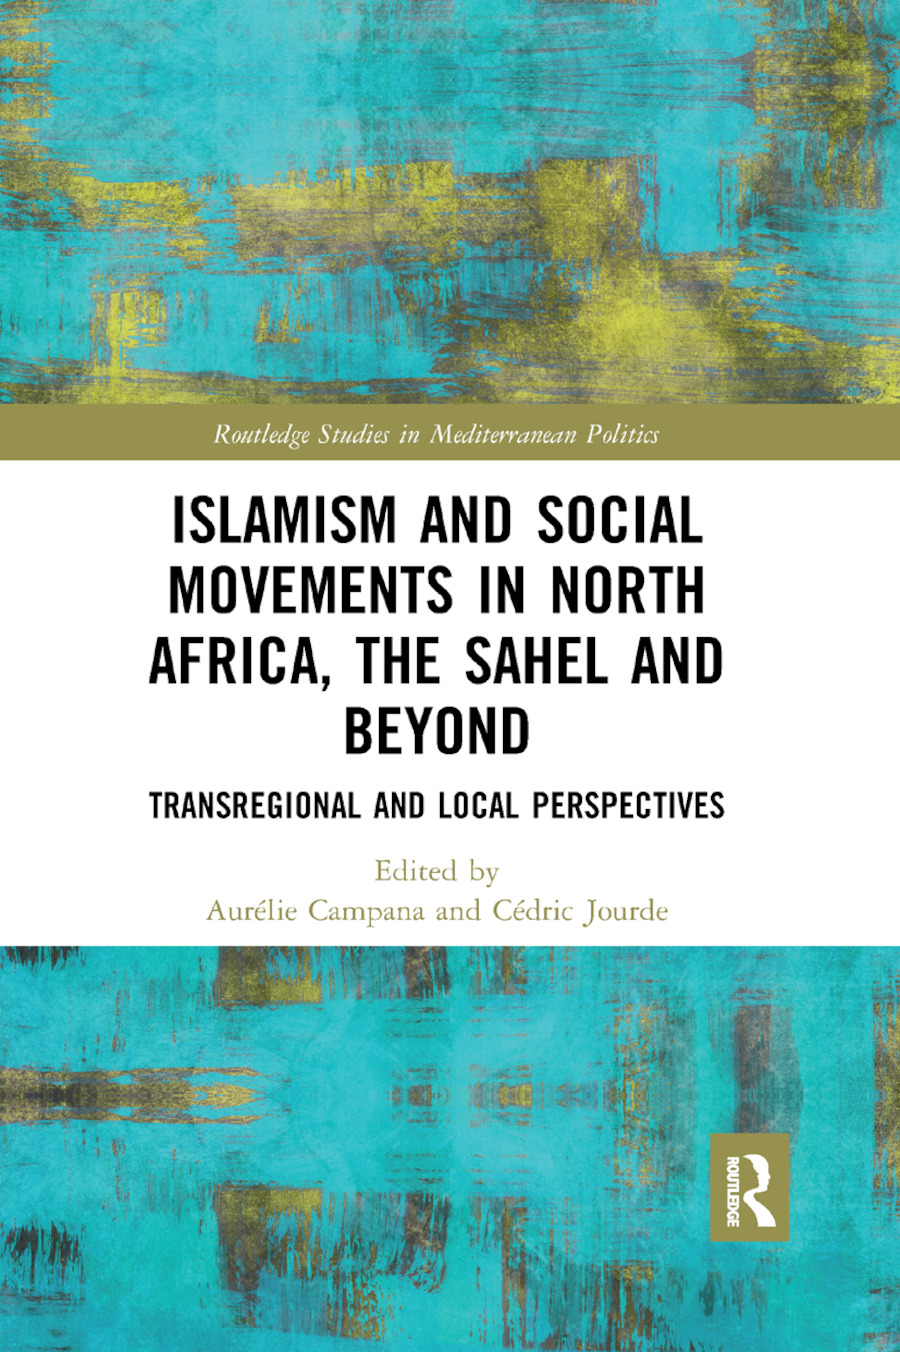 Islamism and Social Movements in North Africa, the Sahel and Beyond: Transregional and Local Perspectives book cover